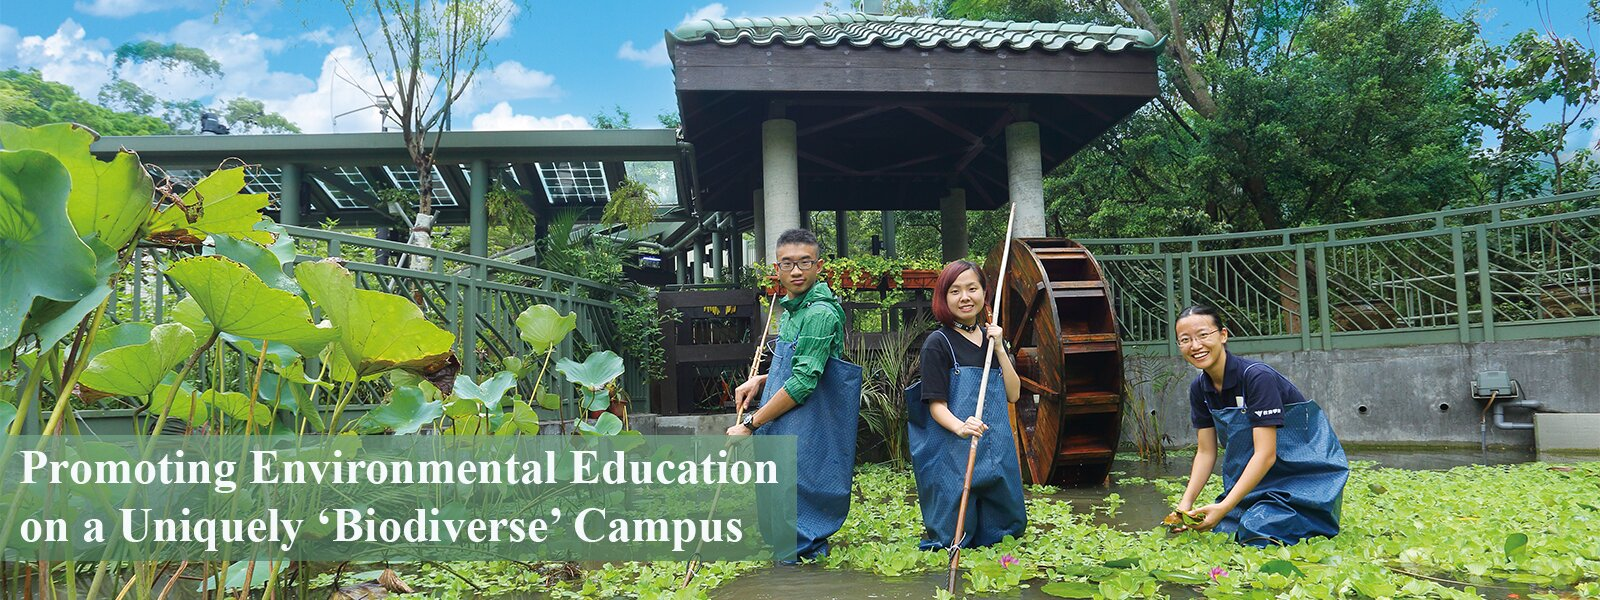 Promoting Environmental Education on a Uniquely 'Biodiverse' Campus